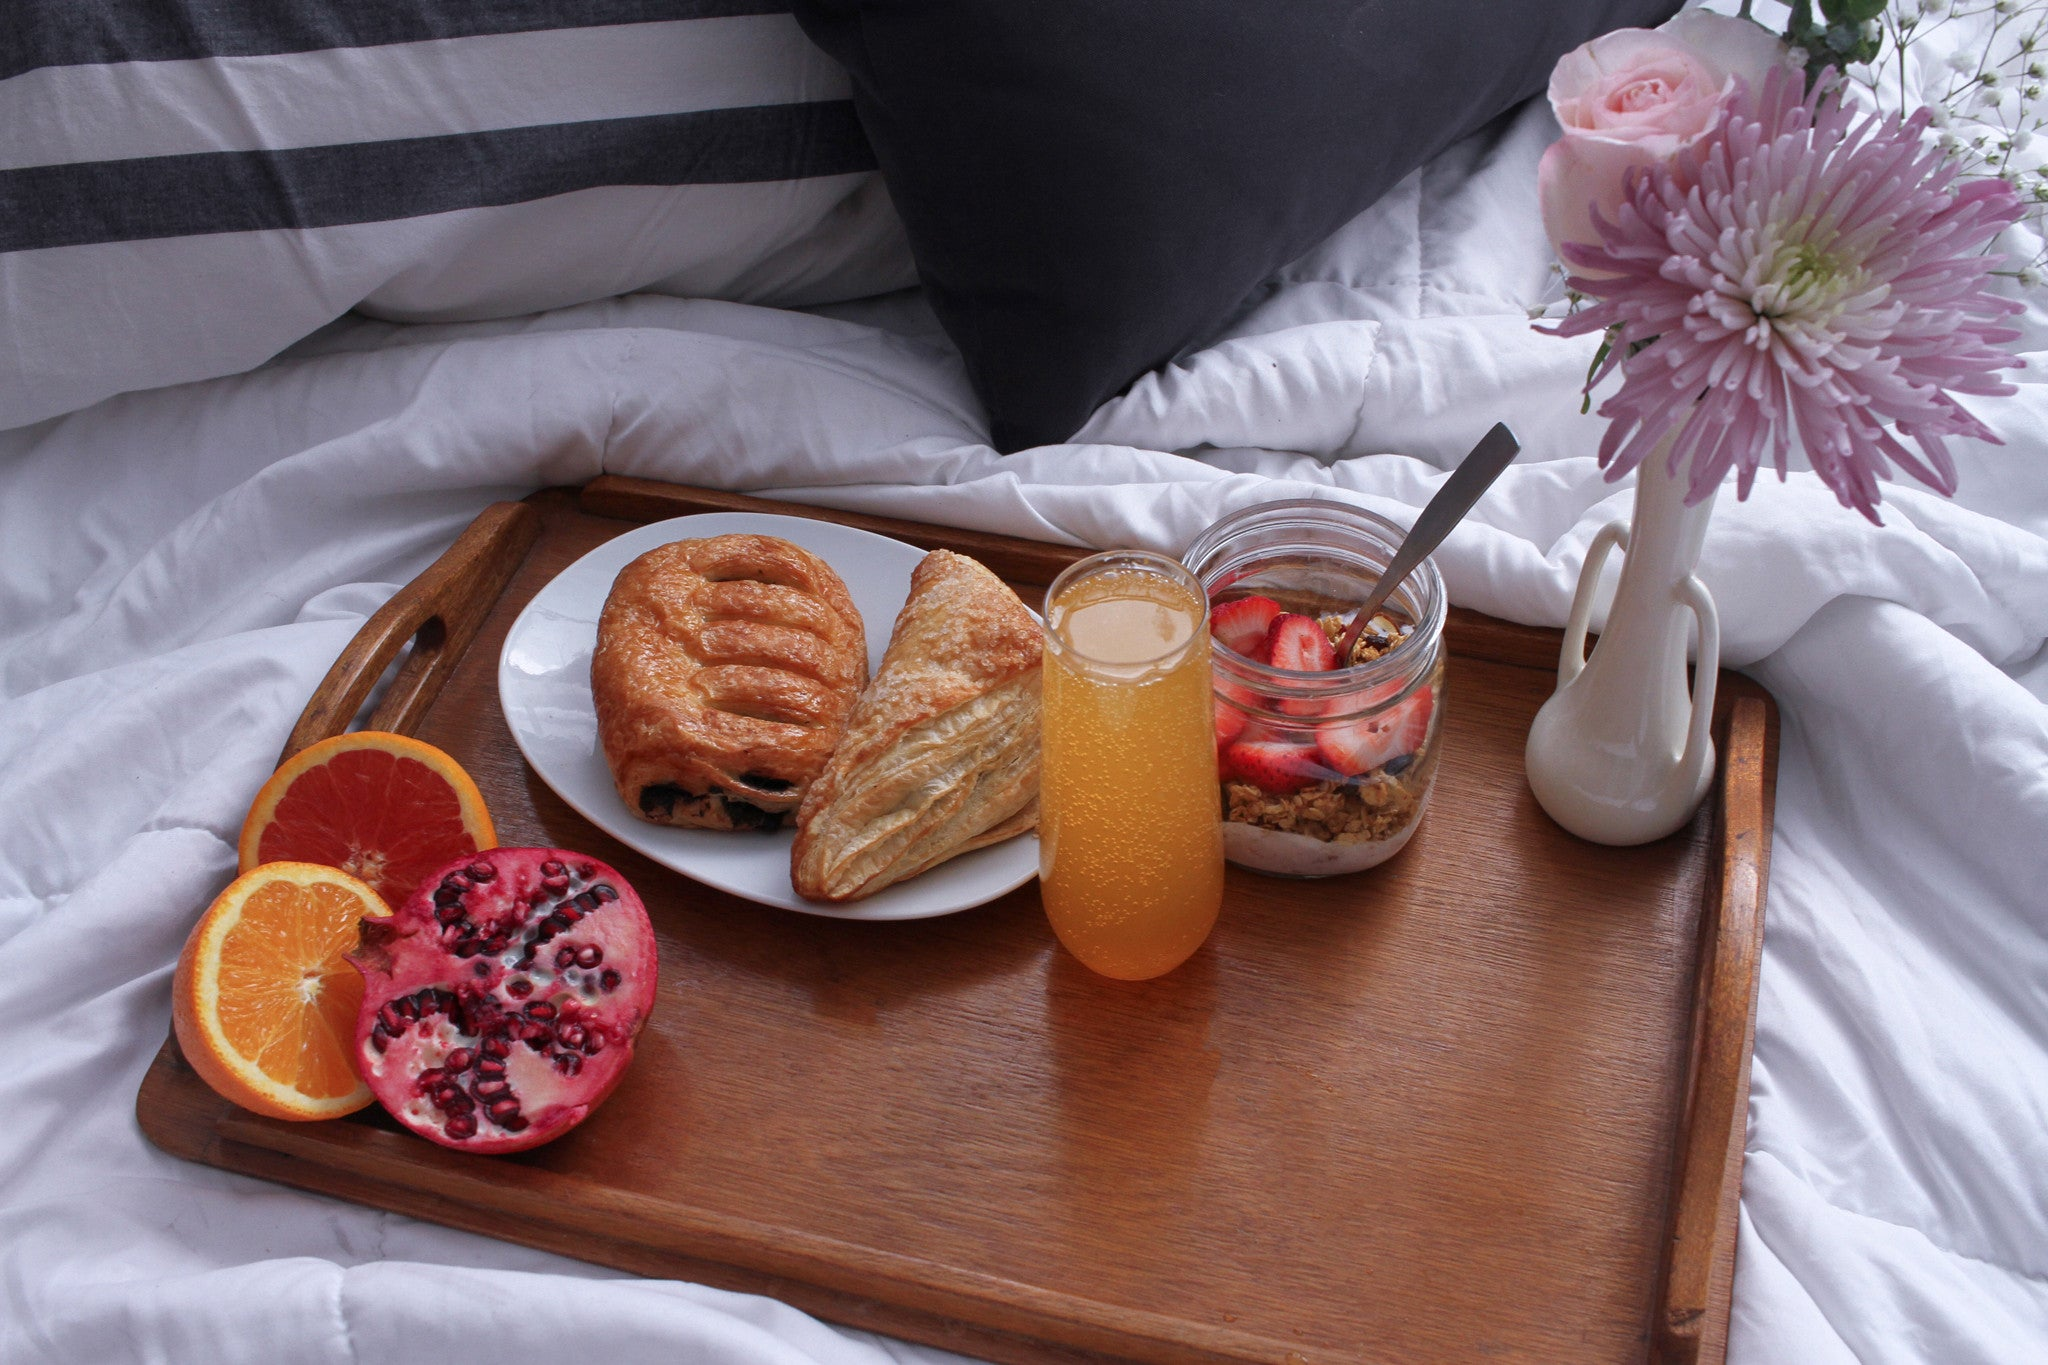 Mother's Day Mimosa, Breakfast in bed, Mimosa in bed, breakfast platter, plastic drinkware